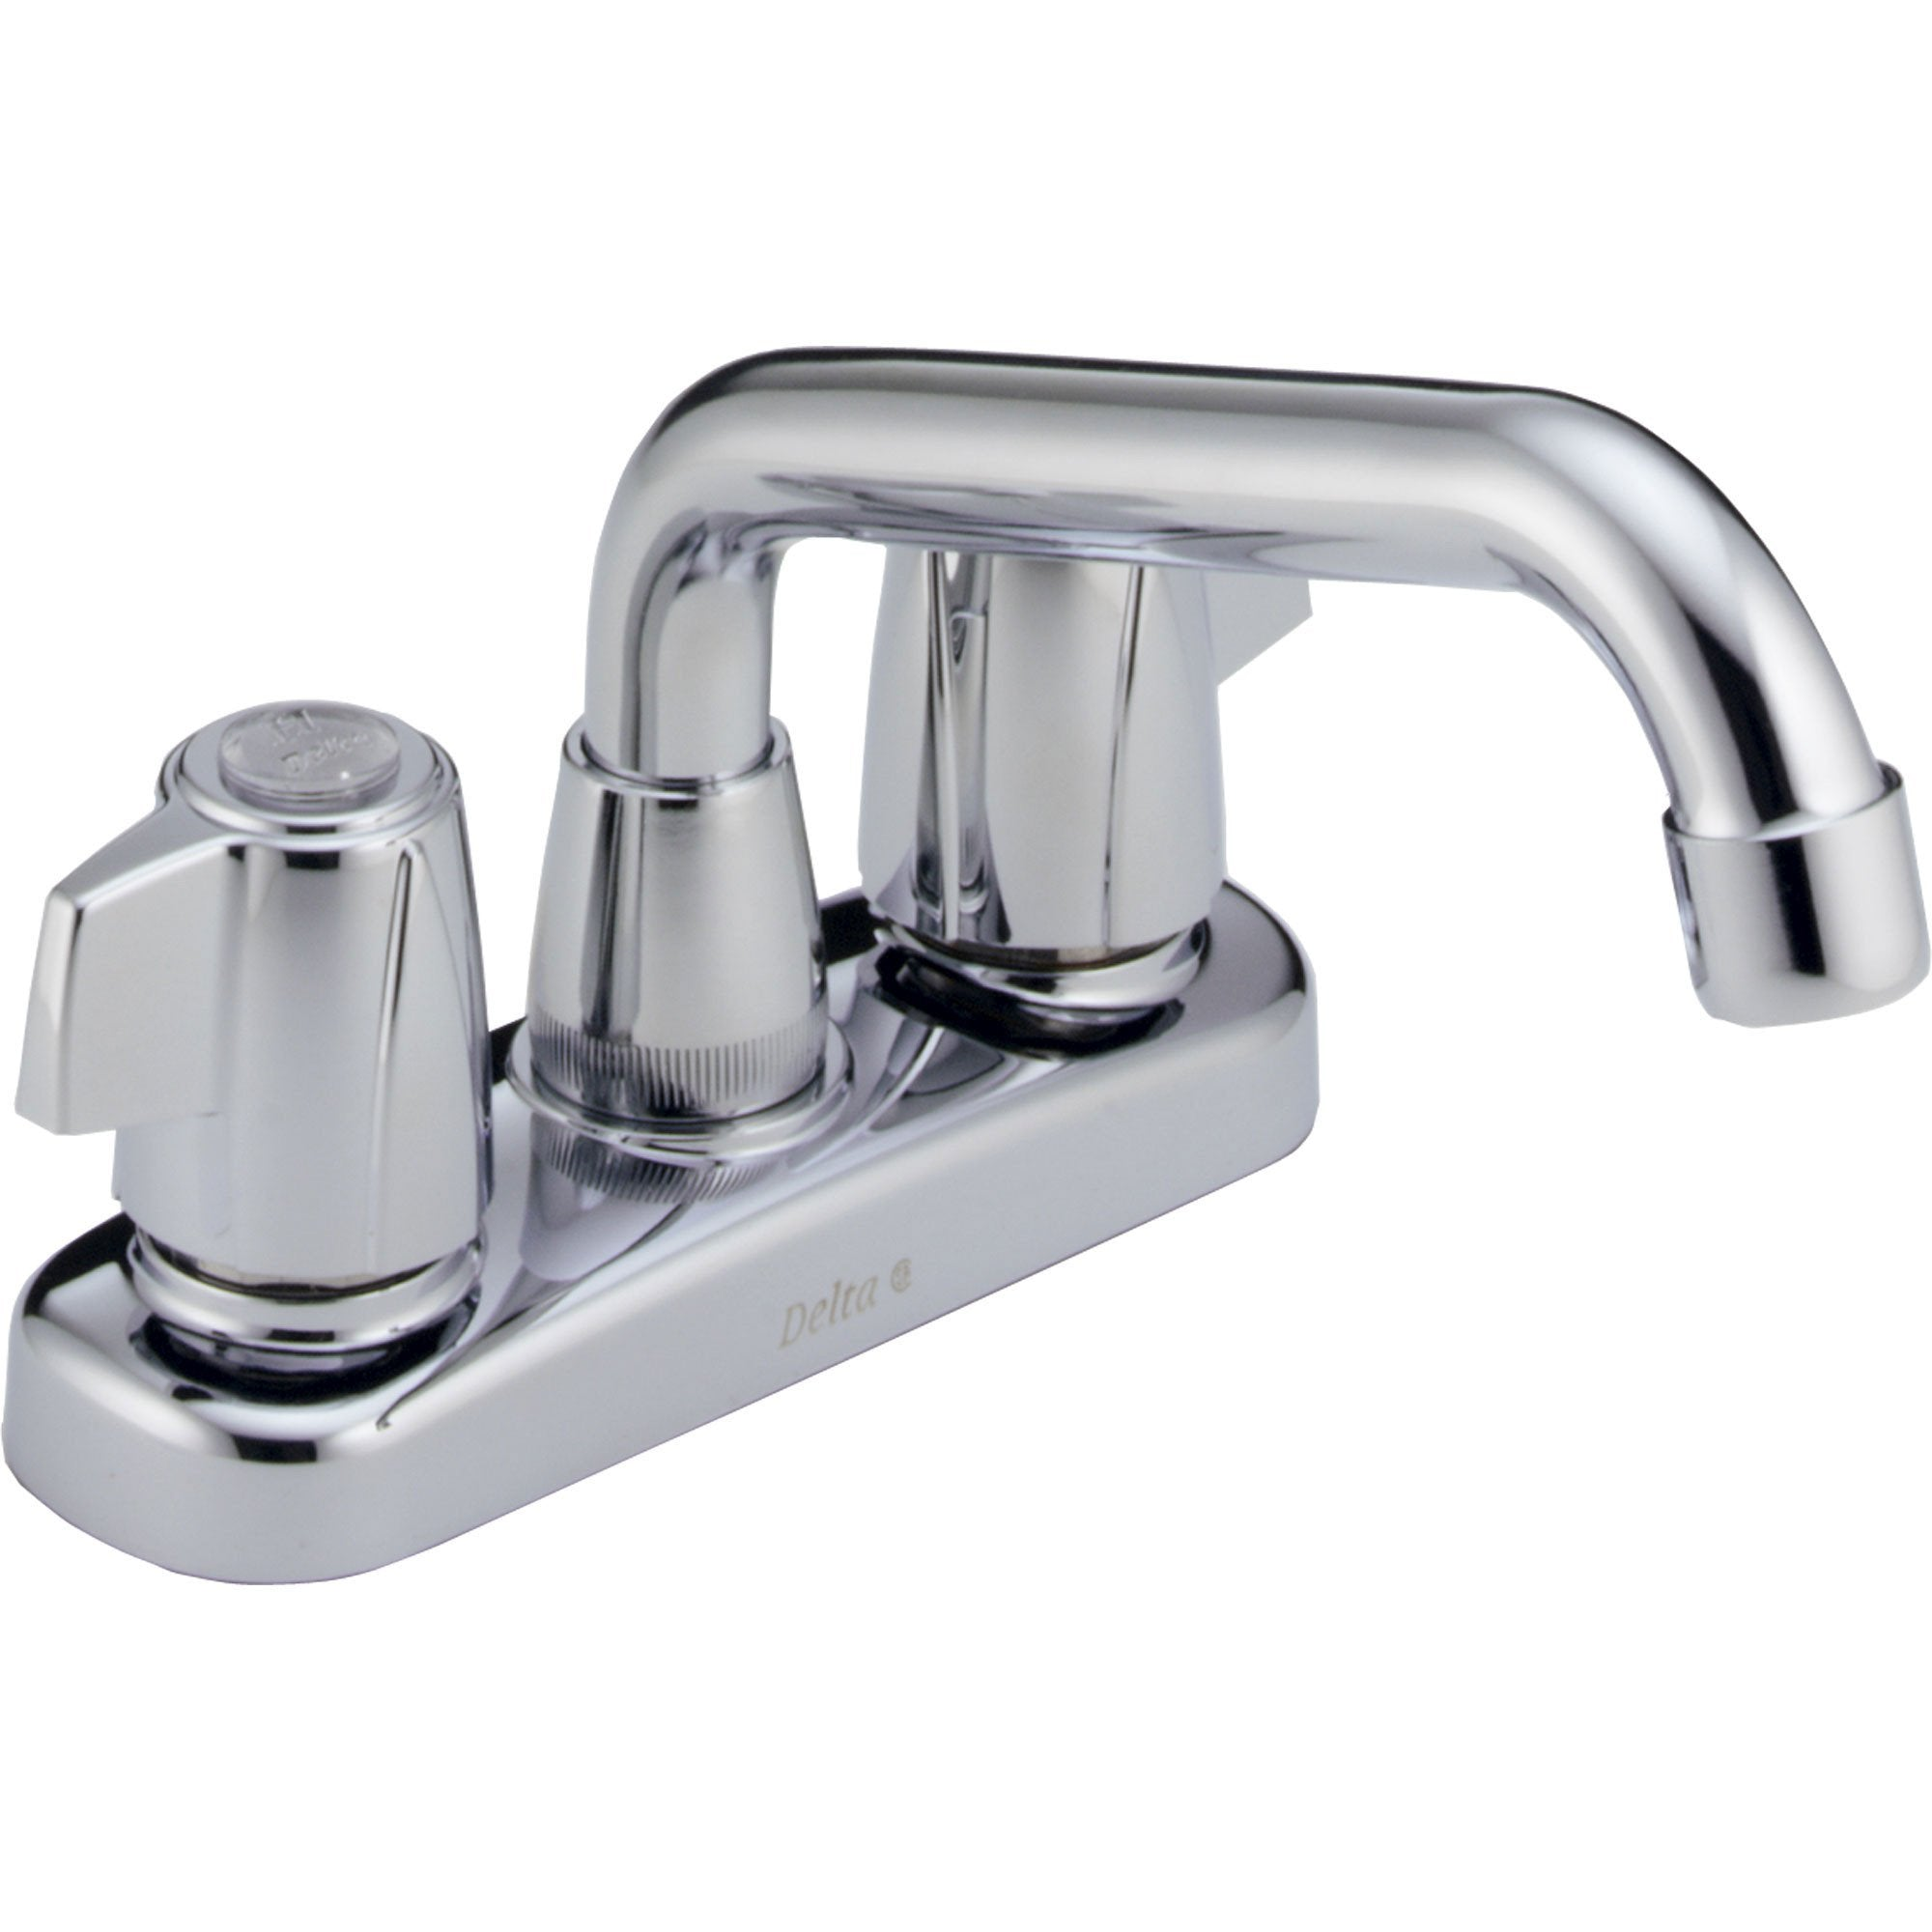 Delta Chrome Finish Two Handle Centerset Laundry Sink Faucet 572900